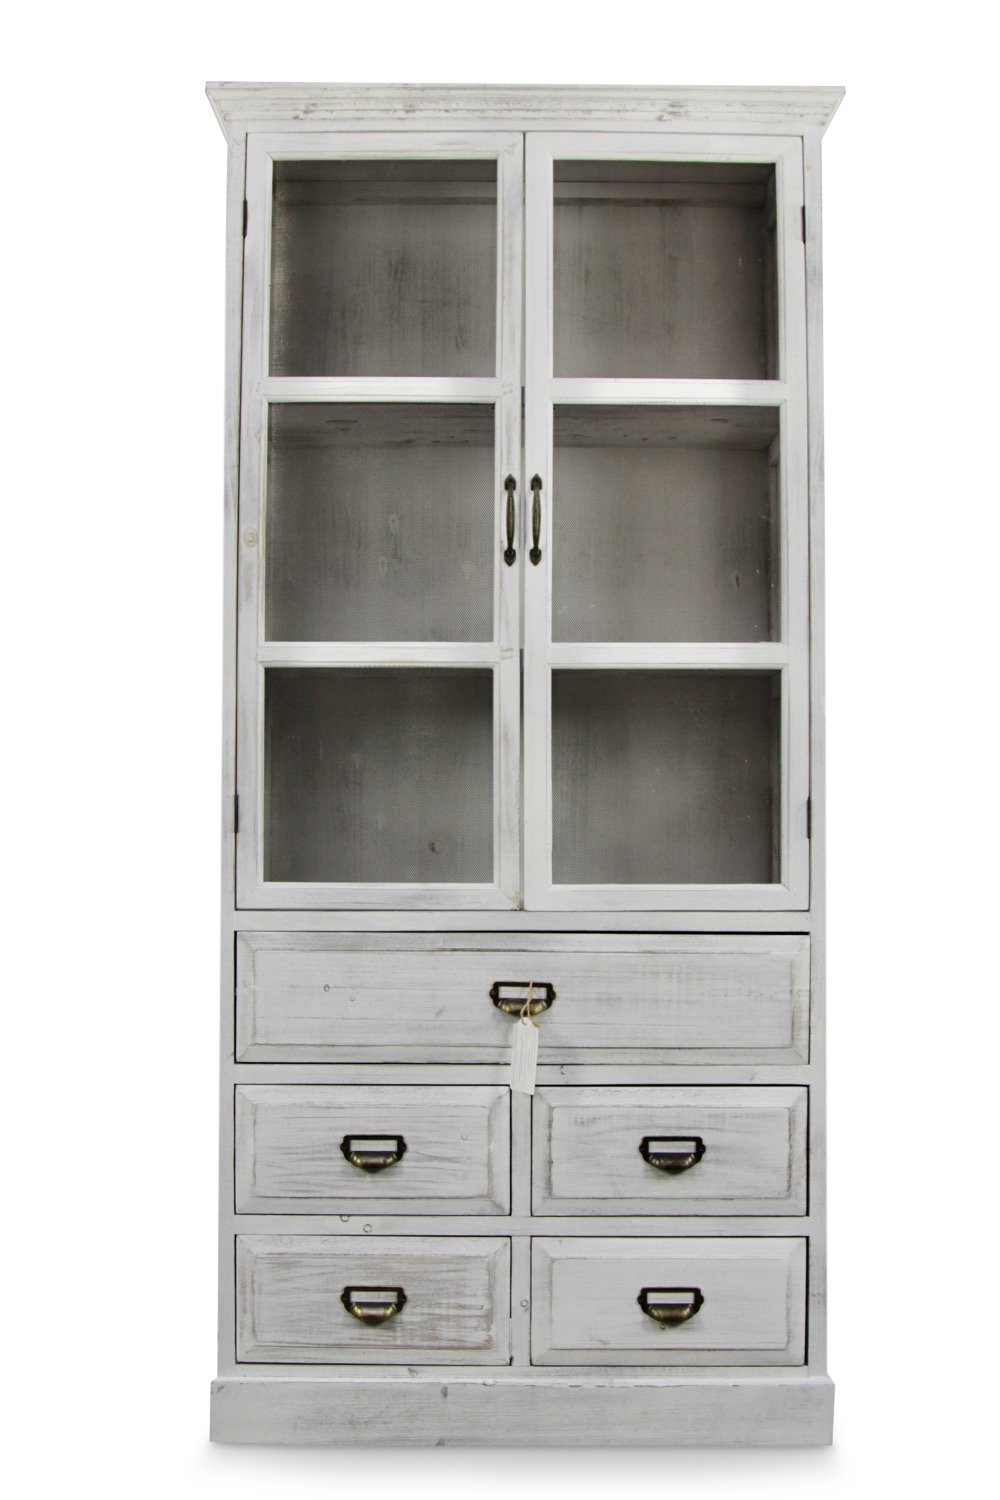 buffet vaisselier rangement bois 5 tiroirs ceruse blanc. Black Bedroom Furniture Sets. Home Design Ideas